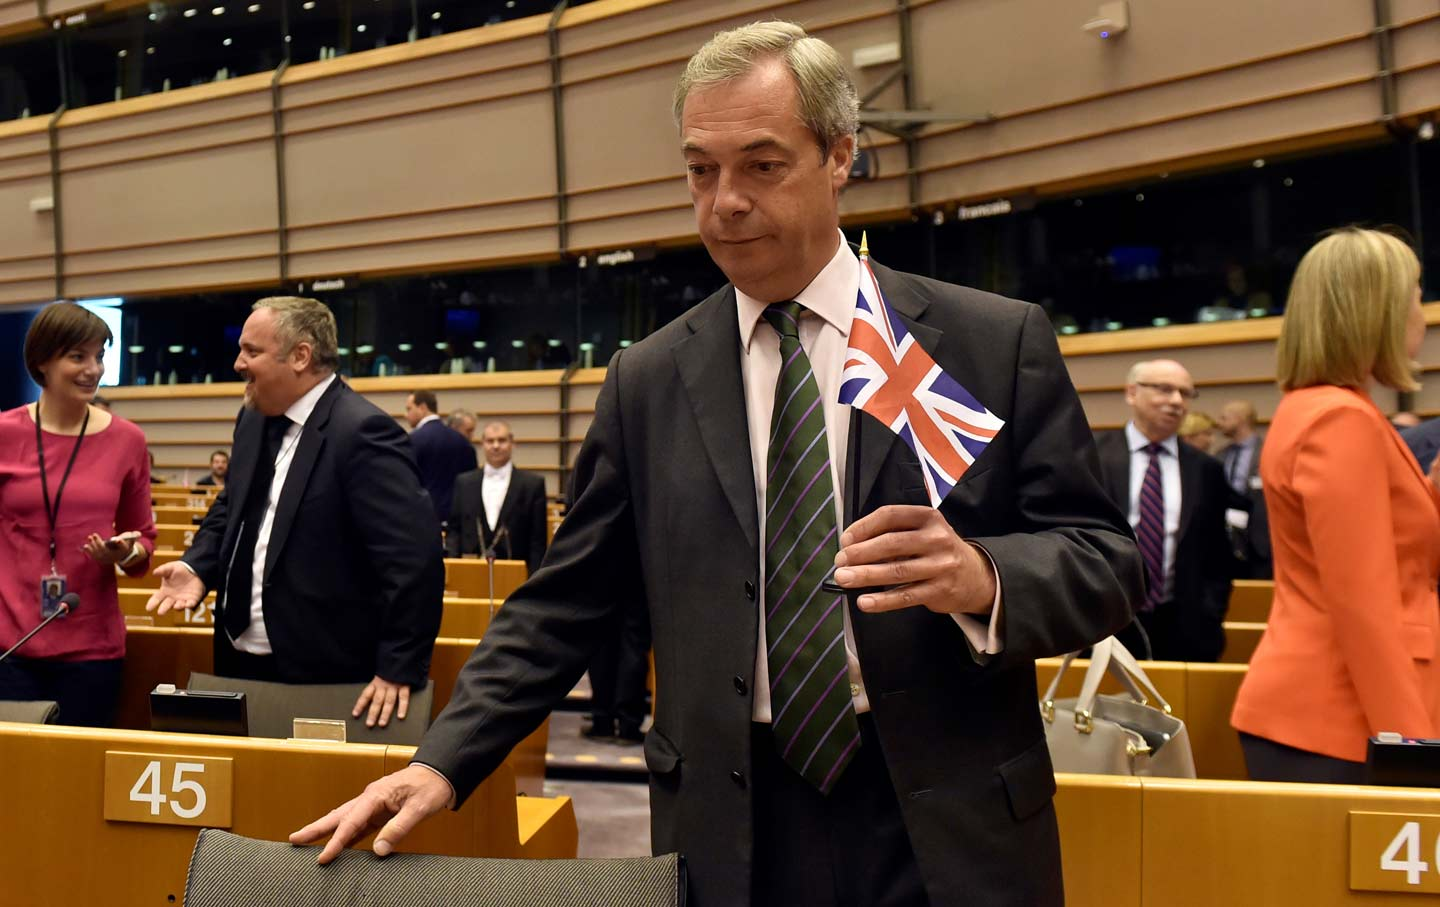 Nigel Farage, the leader of the United Kingdom Independence Party, holds the British flag as he attends a plenary session at the European Parliament on the outcome of the Brexit in Brussels, Belgium, on June 28, 2016.  (Reuters / Eric Vidal)